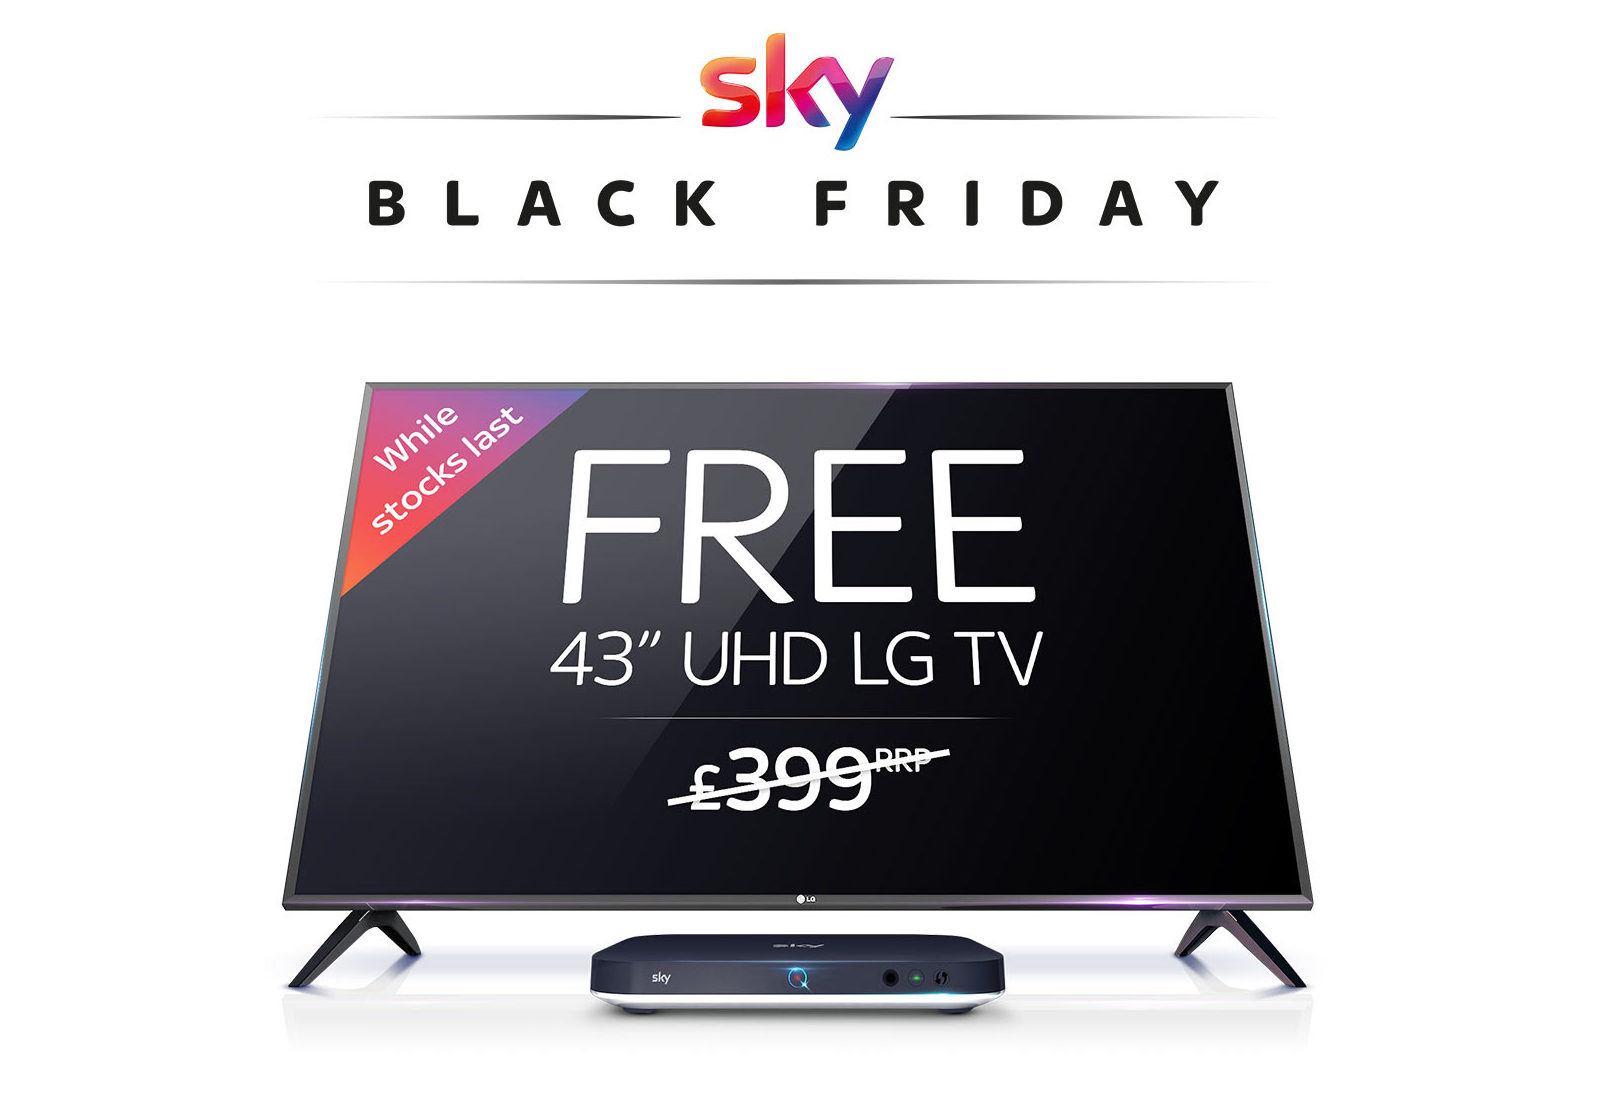 3629a8d5a SKY TV Black Friday – Free 43″ UHD LG TV with Sky Bundle offer £55 per month